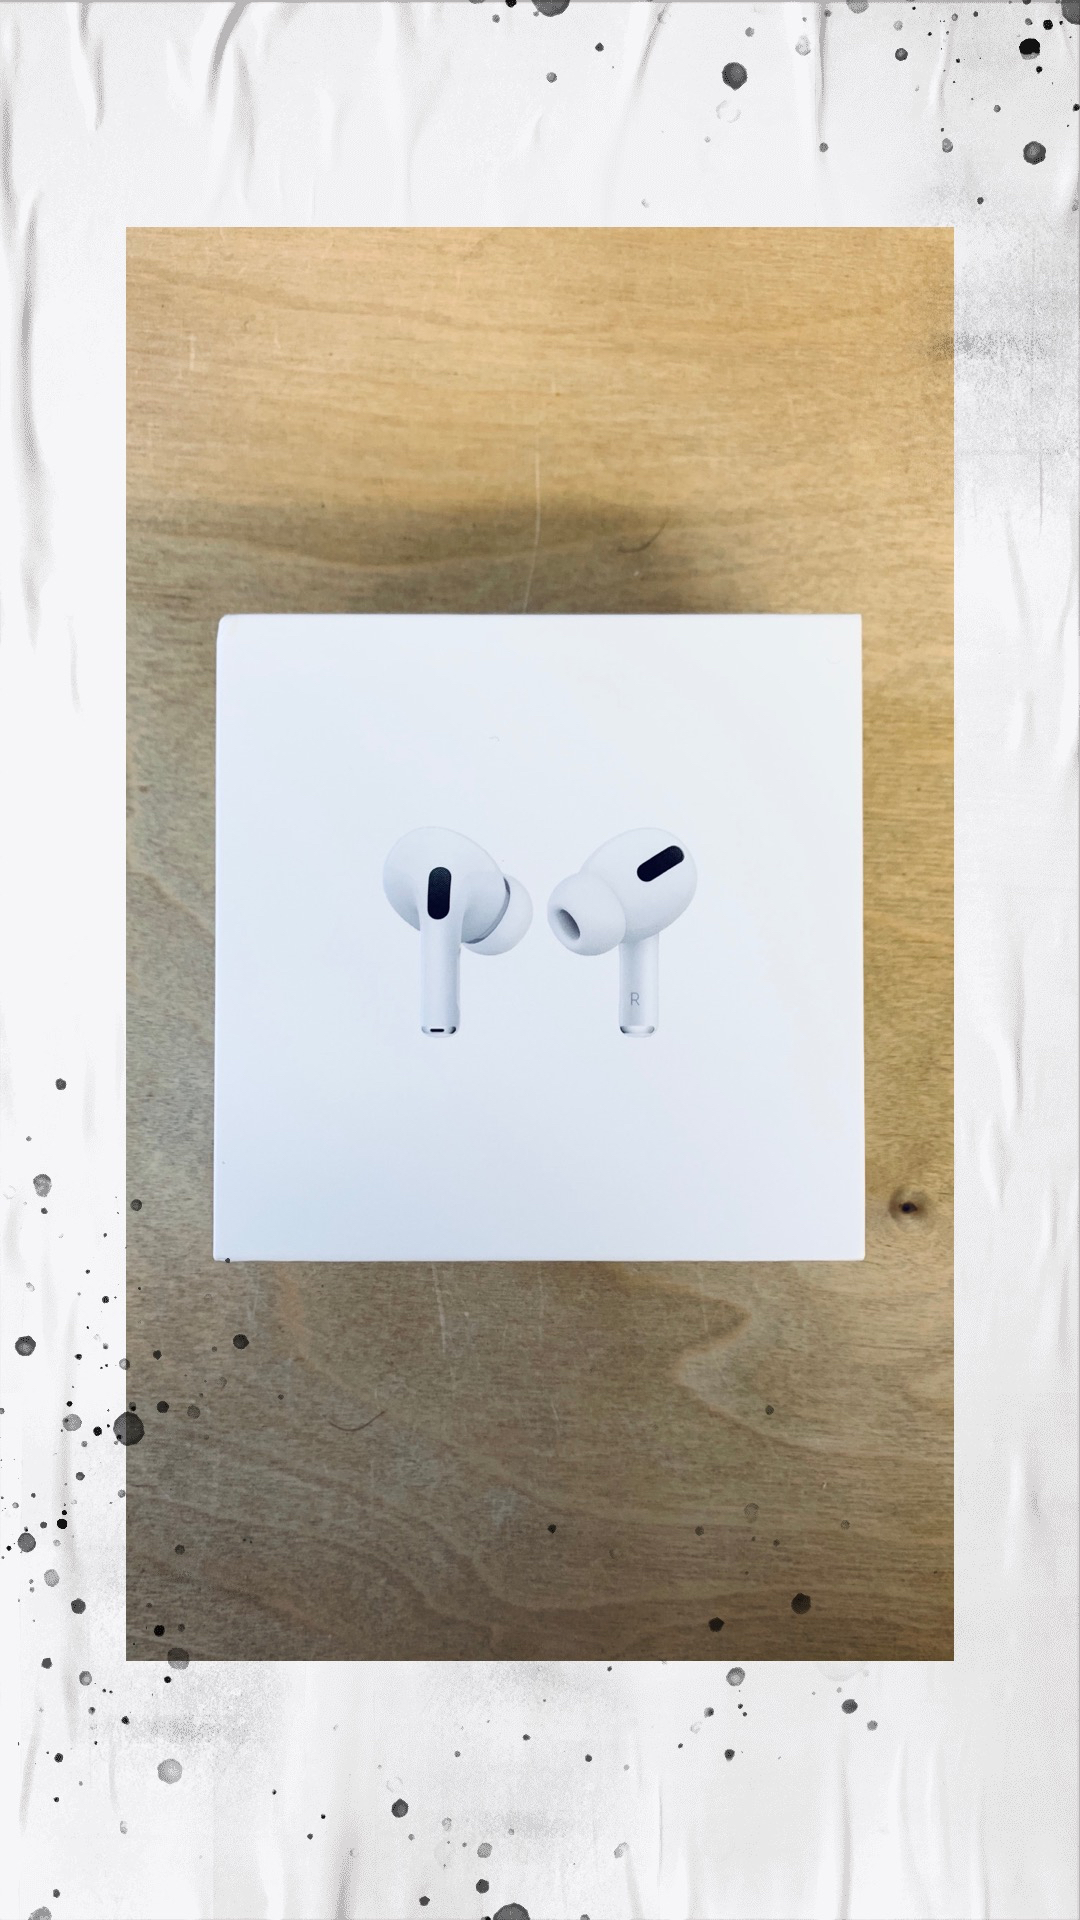 Apple Airpods Pro 02